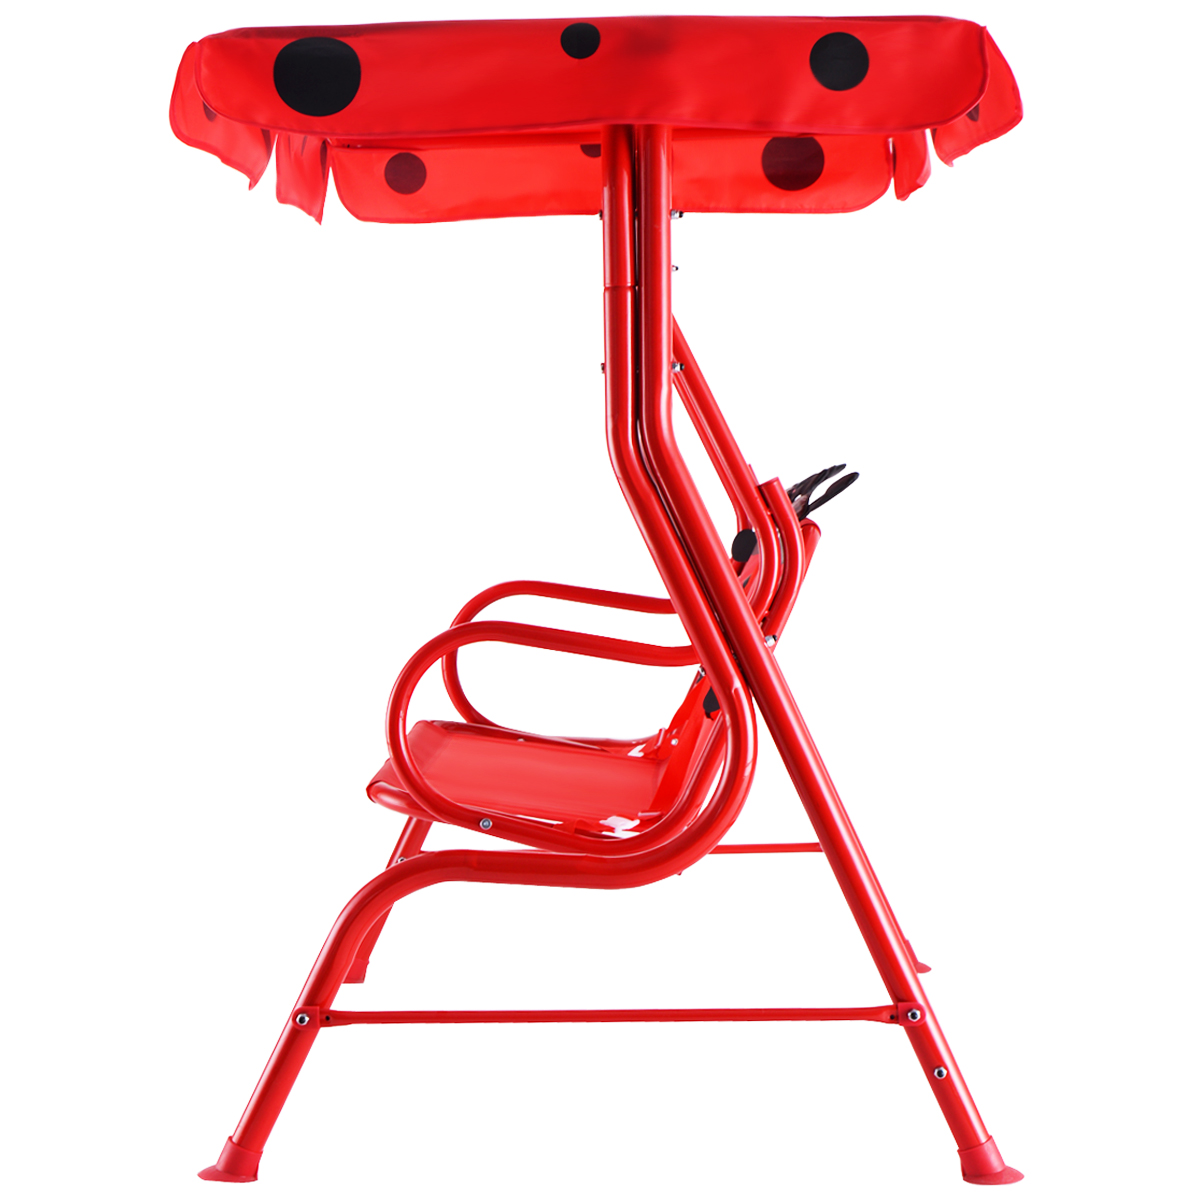 Kids Patio Swing Chair Children Porch Bench Canopy 2 Person Yard Furniture red - image 7 of 10